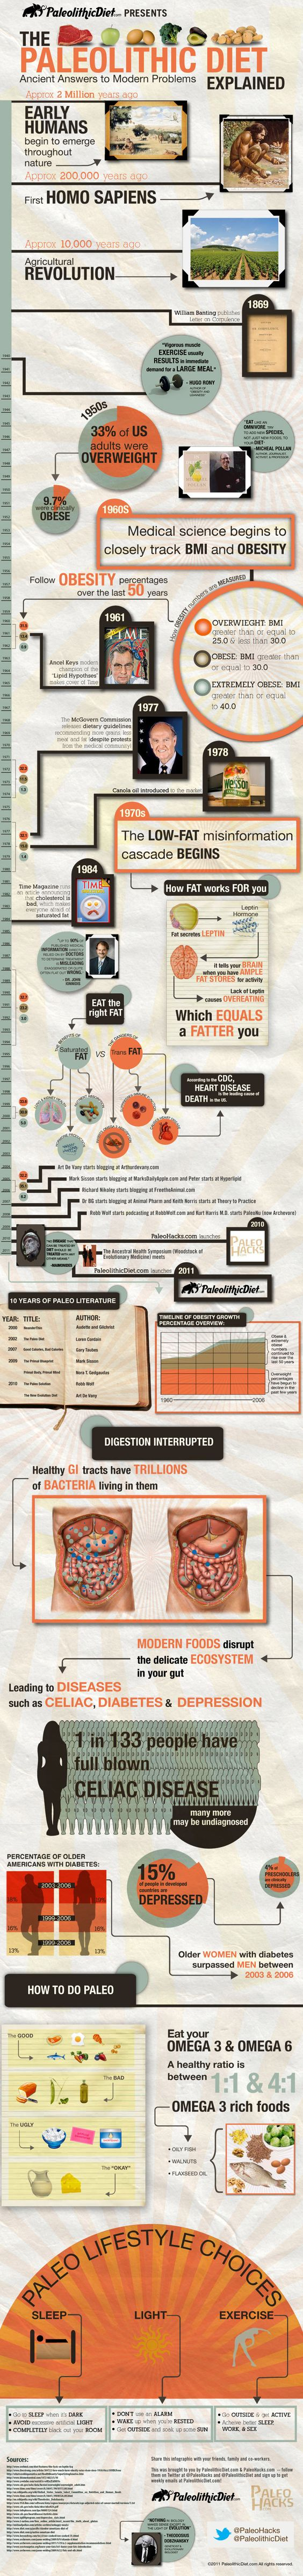 The Paleolithic Diet Infographic